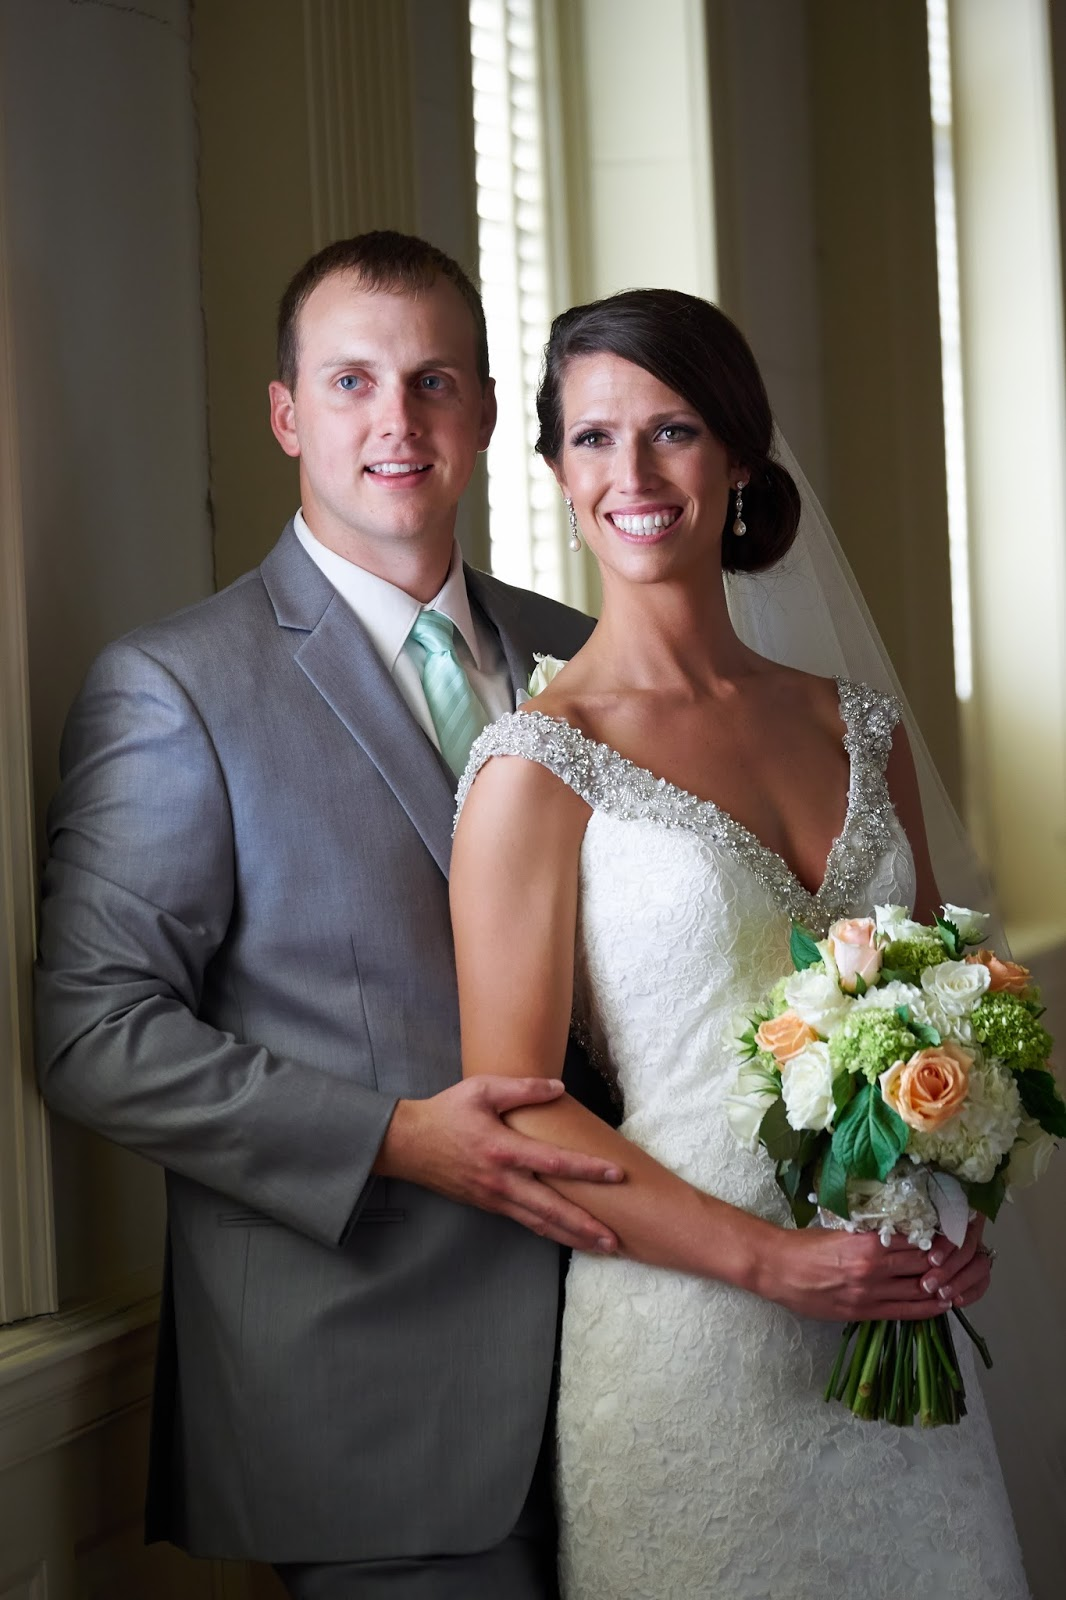 Cable Photography & Video: Sarah Howell & Mike Ritchie - Wedding ...